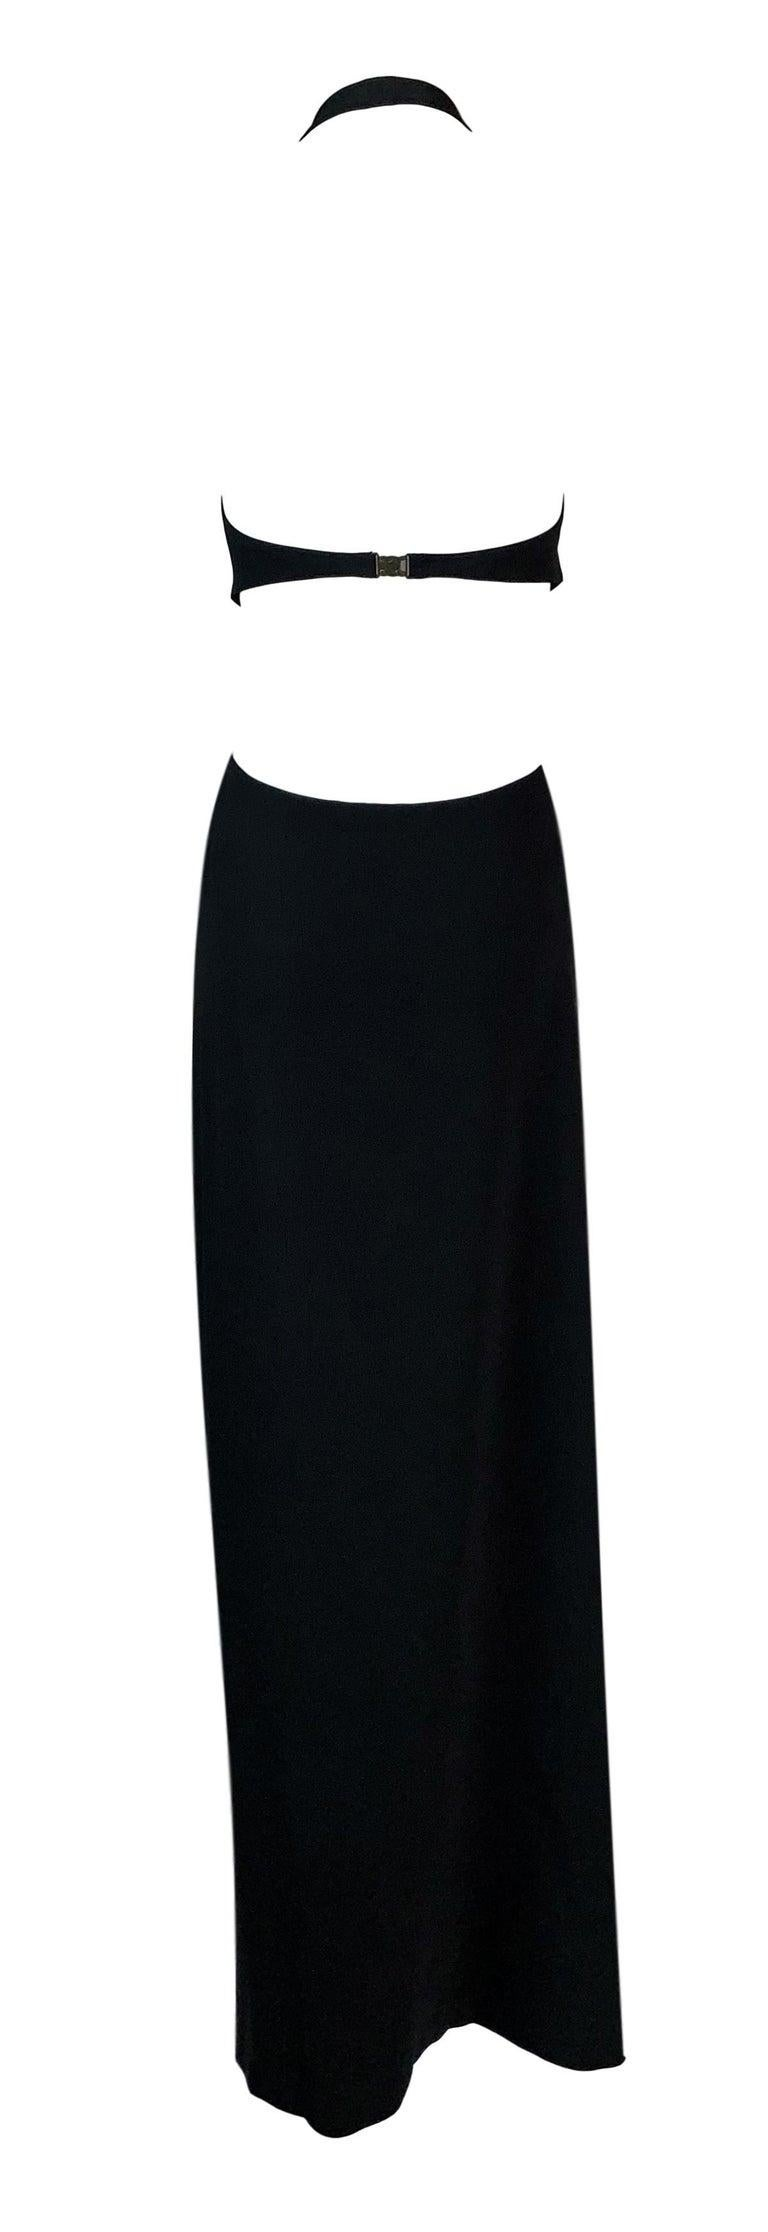 S/S 2004 Celine by Michael Kors Long Black Cut-Out Plunging Dress 36 In Good Condition For Sale In Yukon, OK